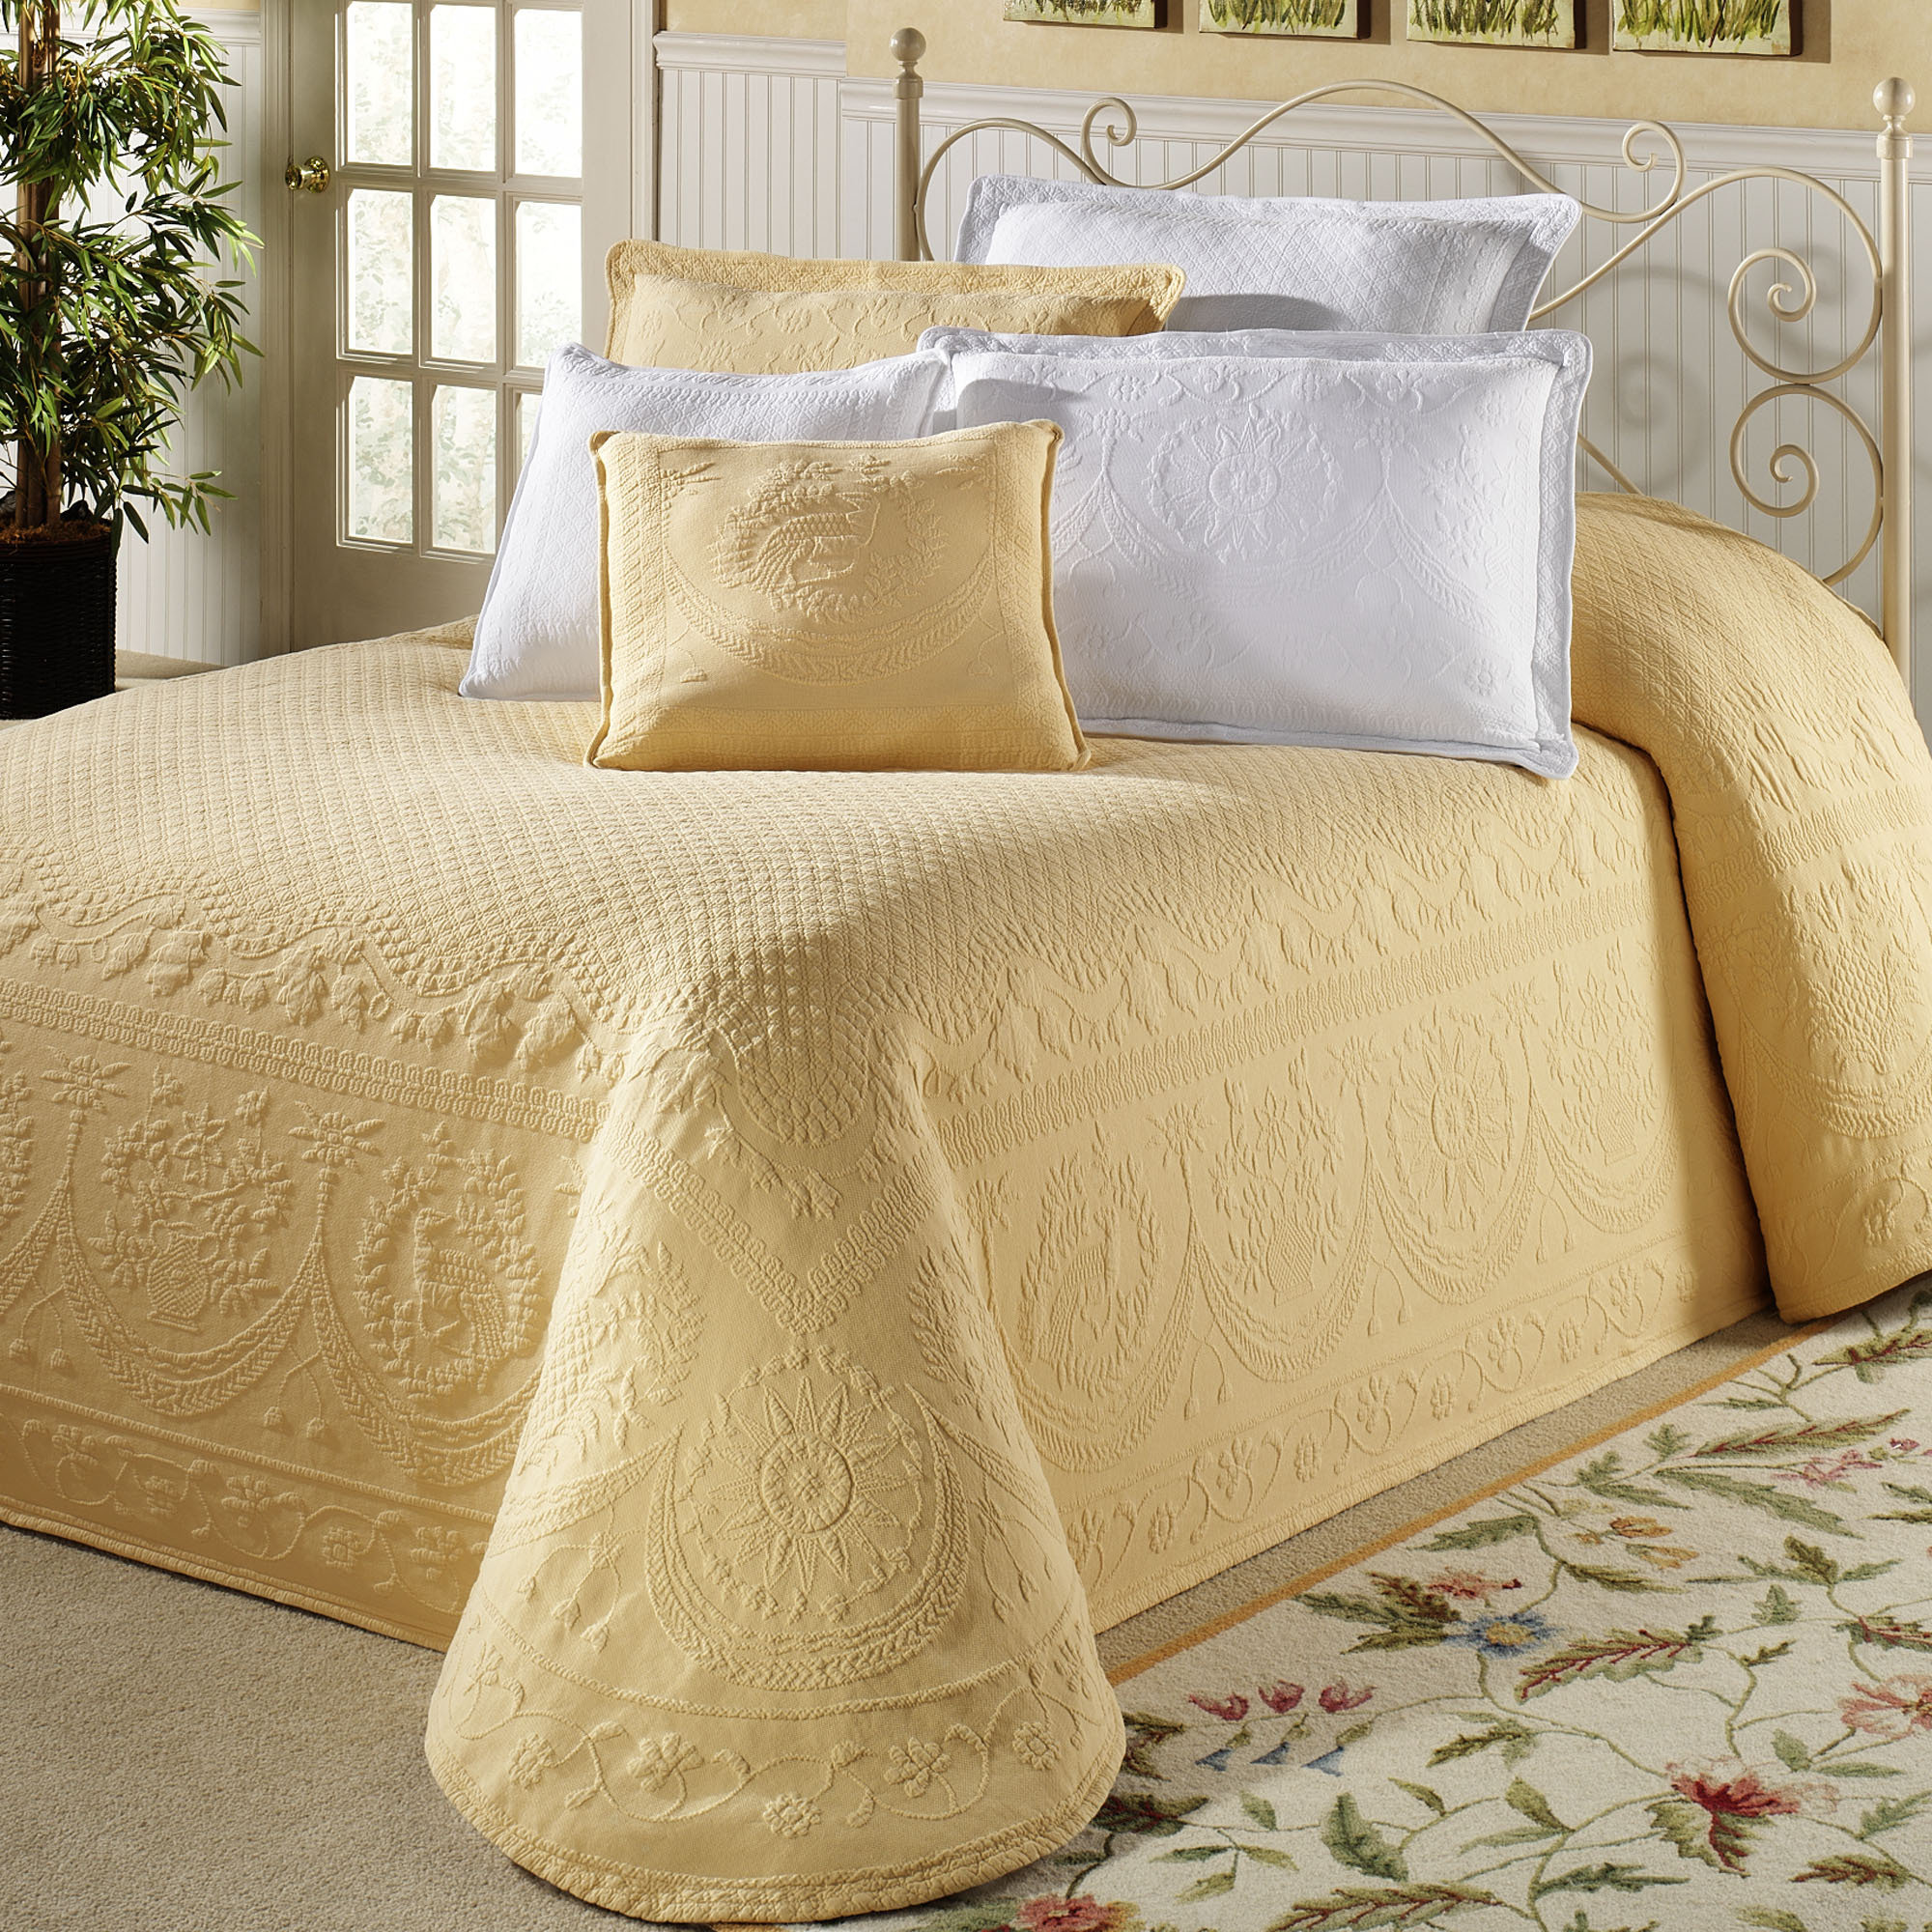 Great matelasse for bedding ideas with matelasse bedding